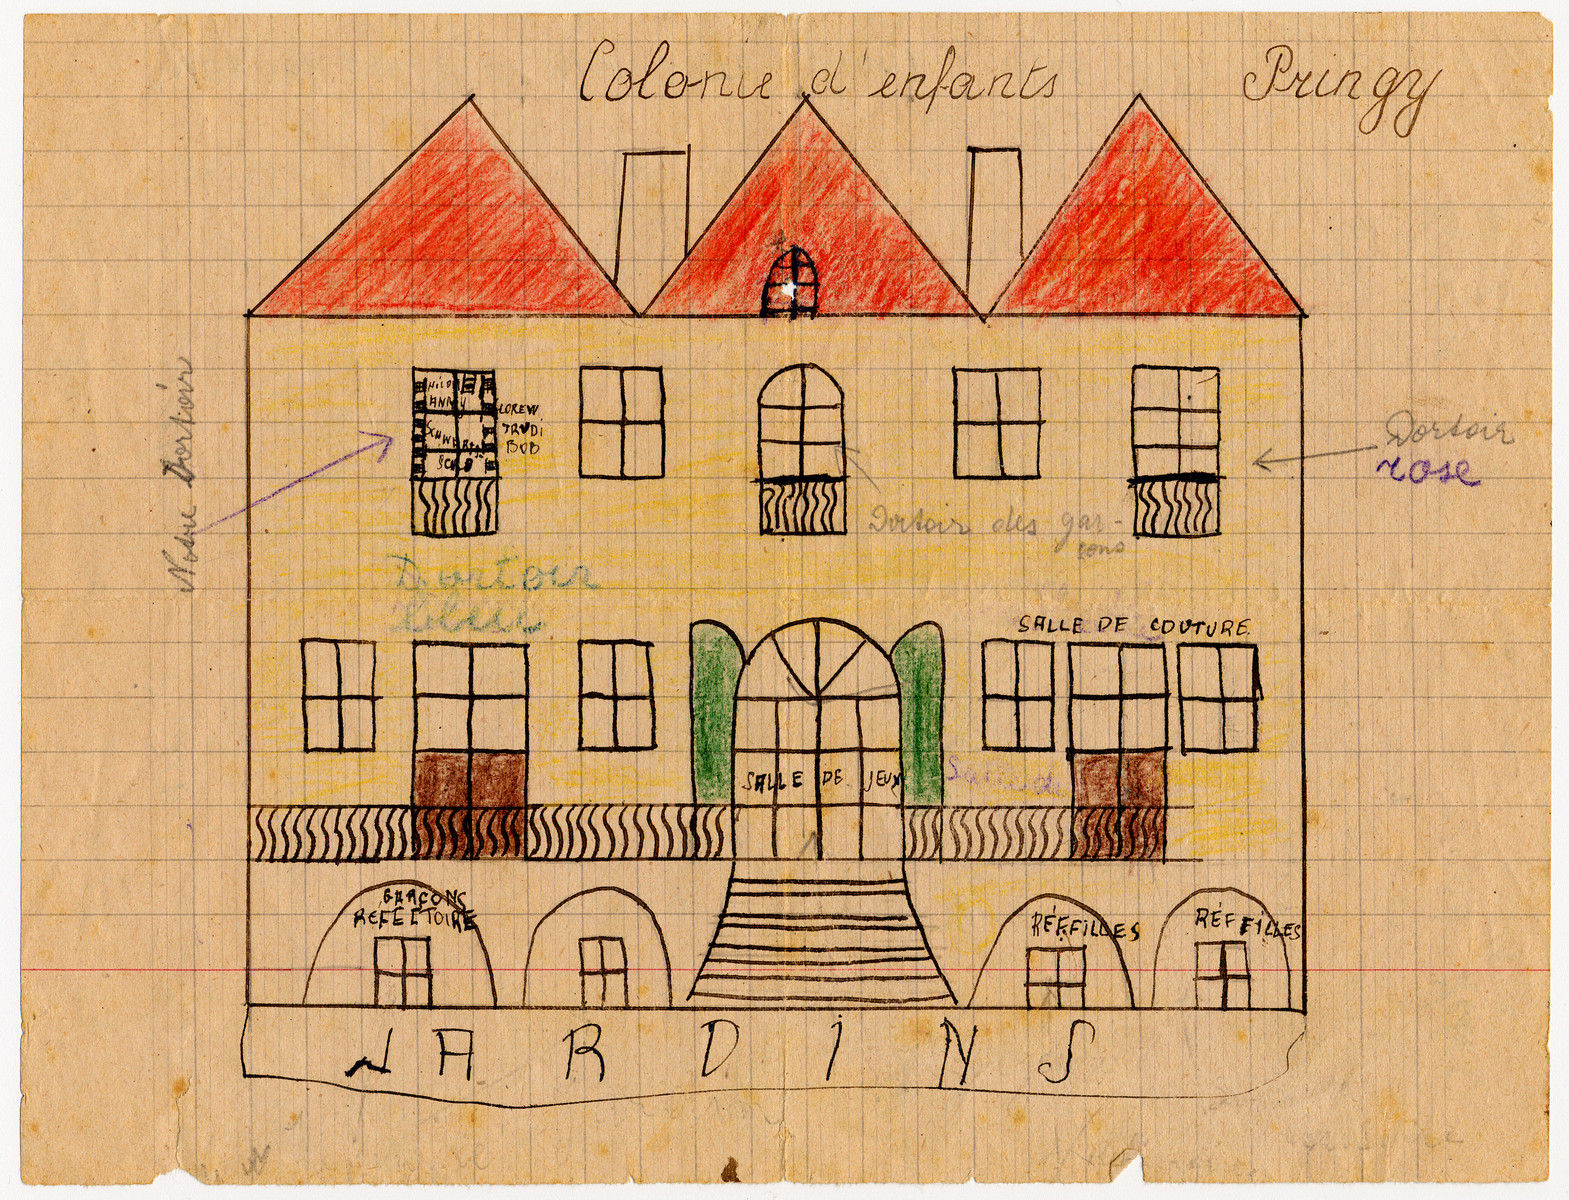 Children's drawing of the Pringy children's home.